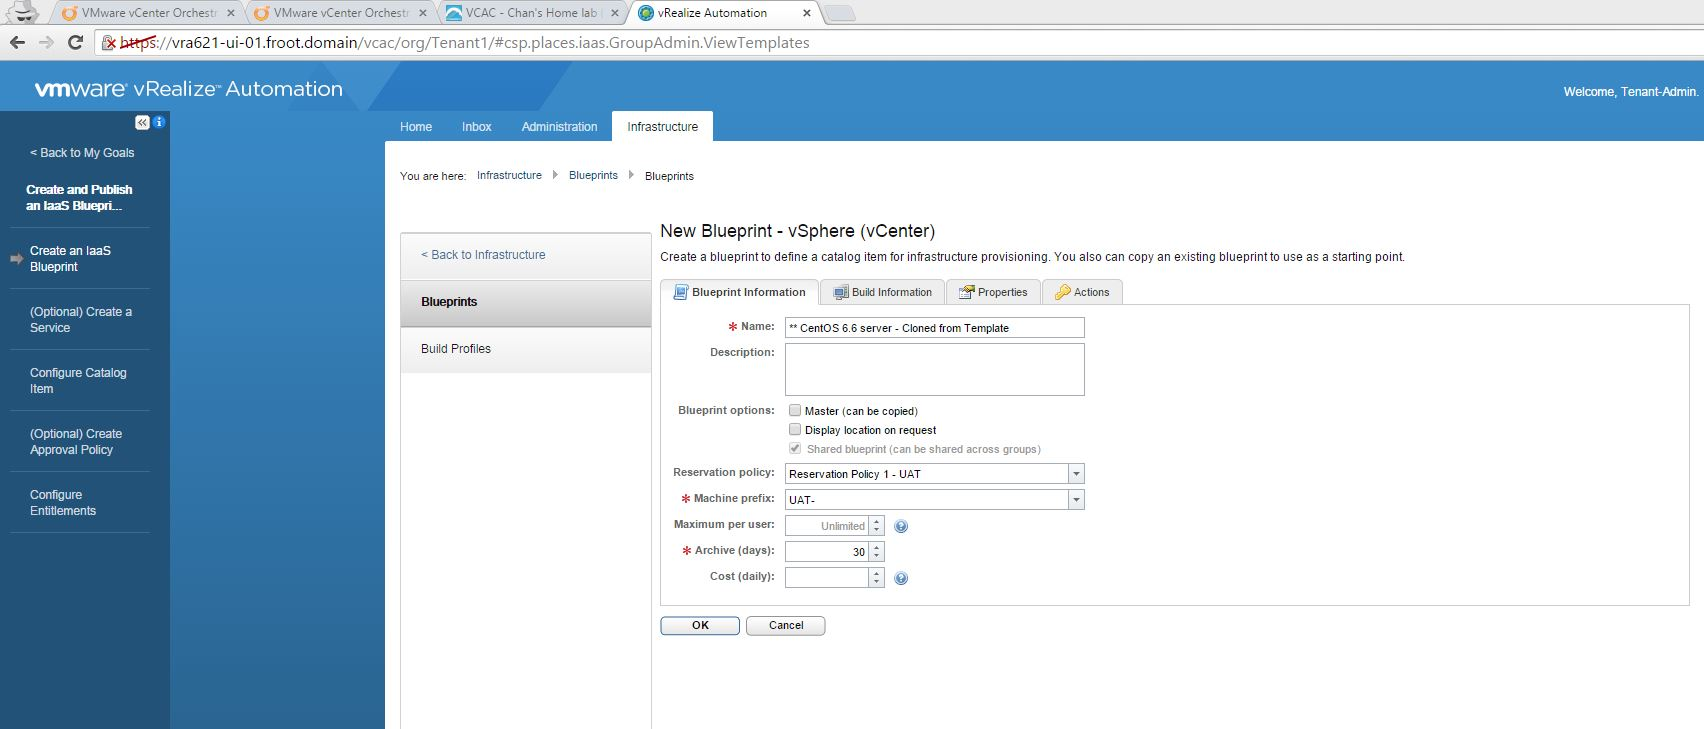 Vmware vrealize automation part 7 tenant administrator basic go to infrastructure blueprints and use new blueprint button to create a new virtual vsphere blueprint and fill out the basic blueprint information 212 malvernweather Choice Image